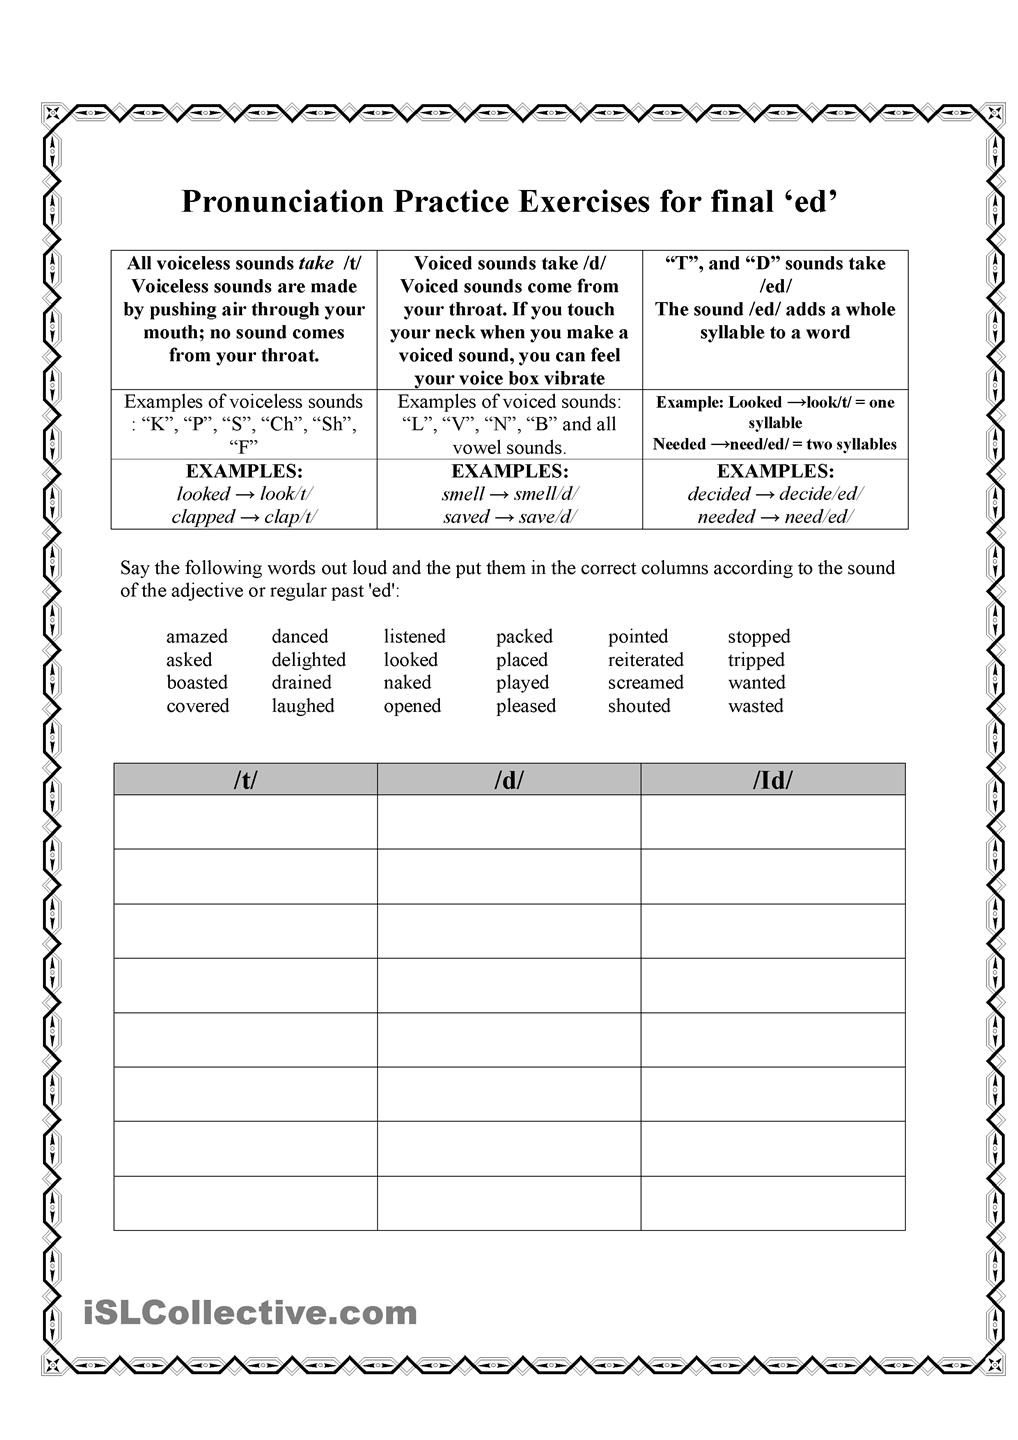 worksheet Esl Pronunciation Worksheets pronunciation of ed endings grammar pinterest worksheets this worksheet and flashcards will help students to practice the final s plural nouns regular plurals with en